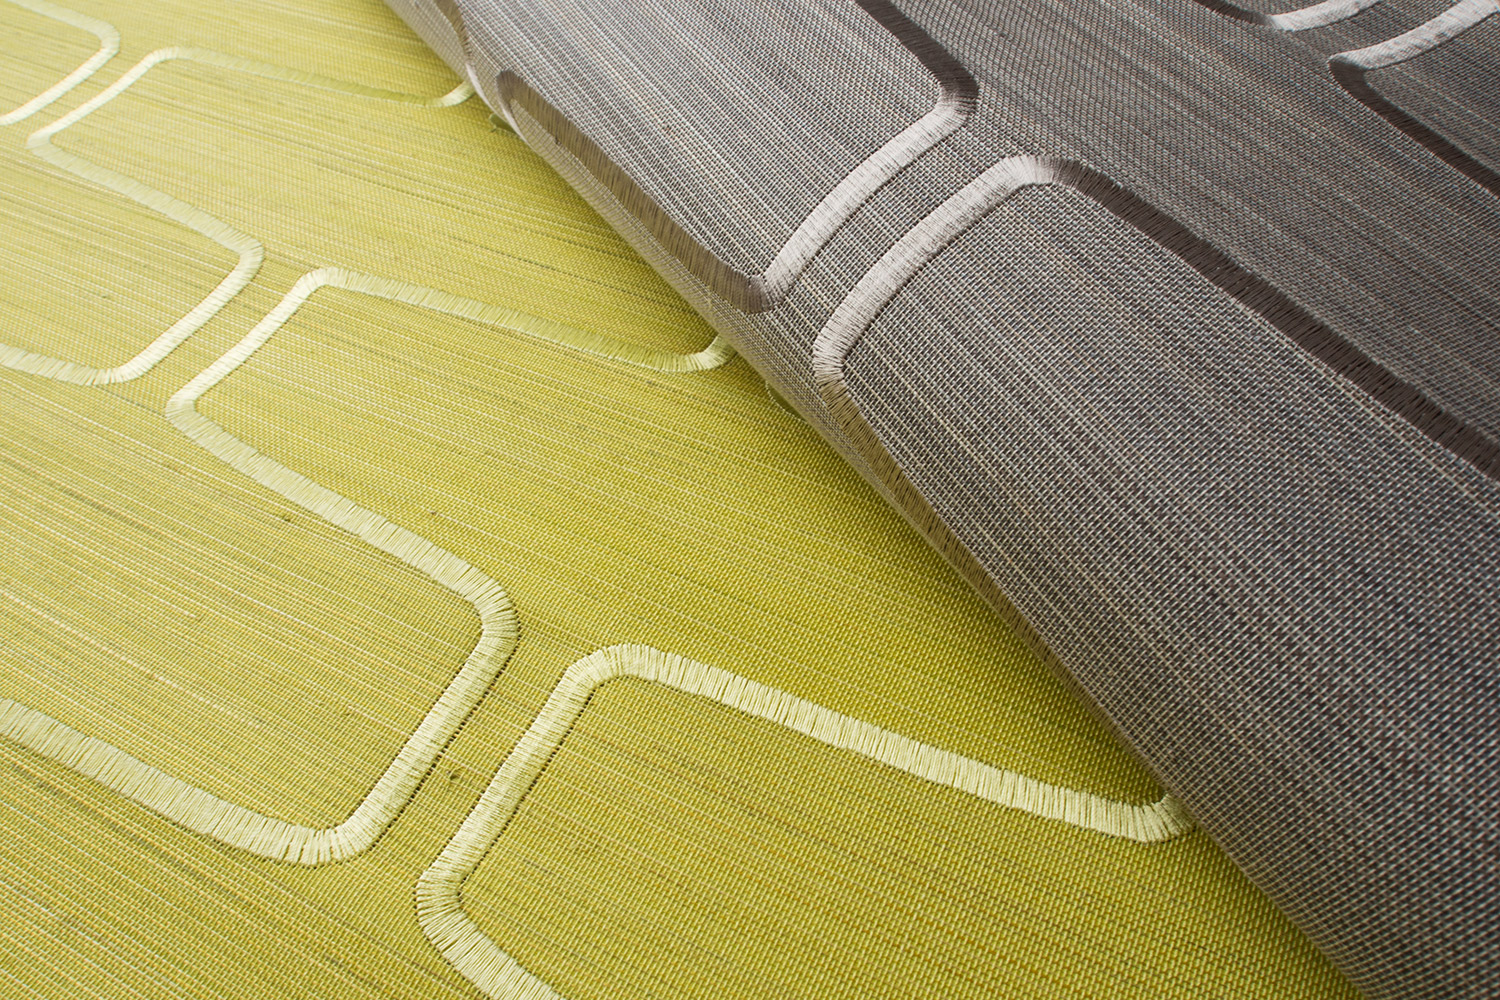 Giardini textile wallpaper, yellow, grey